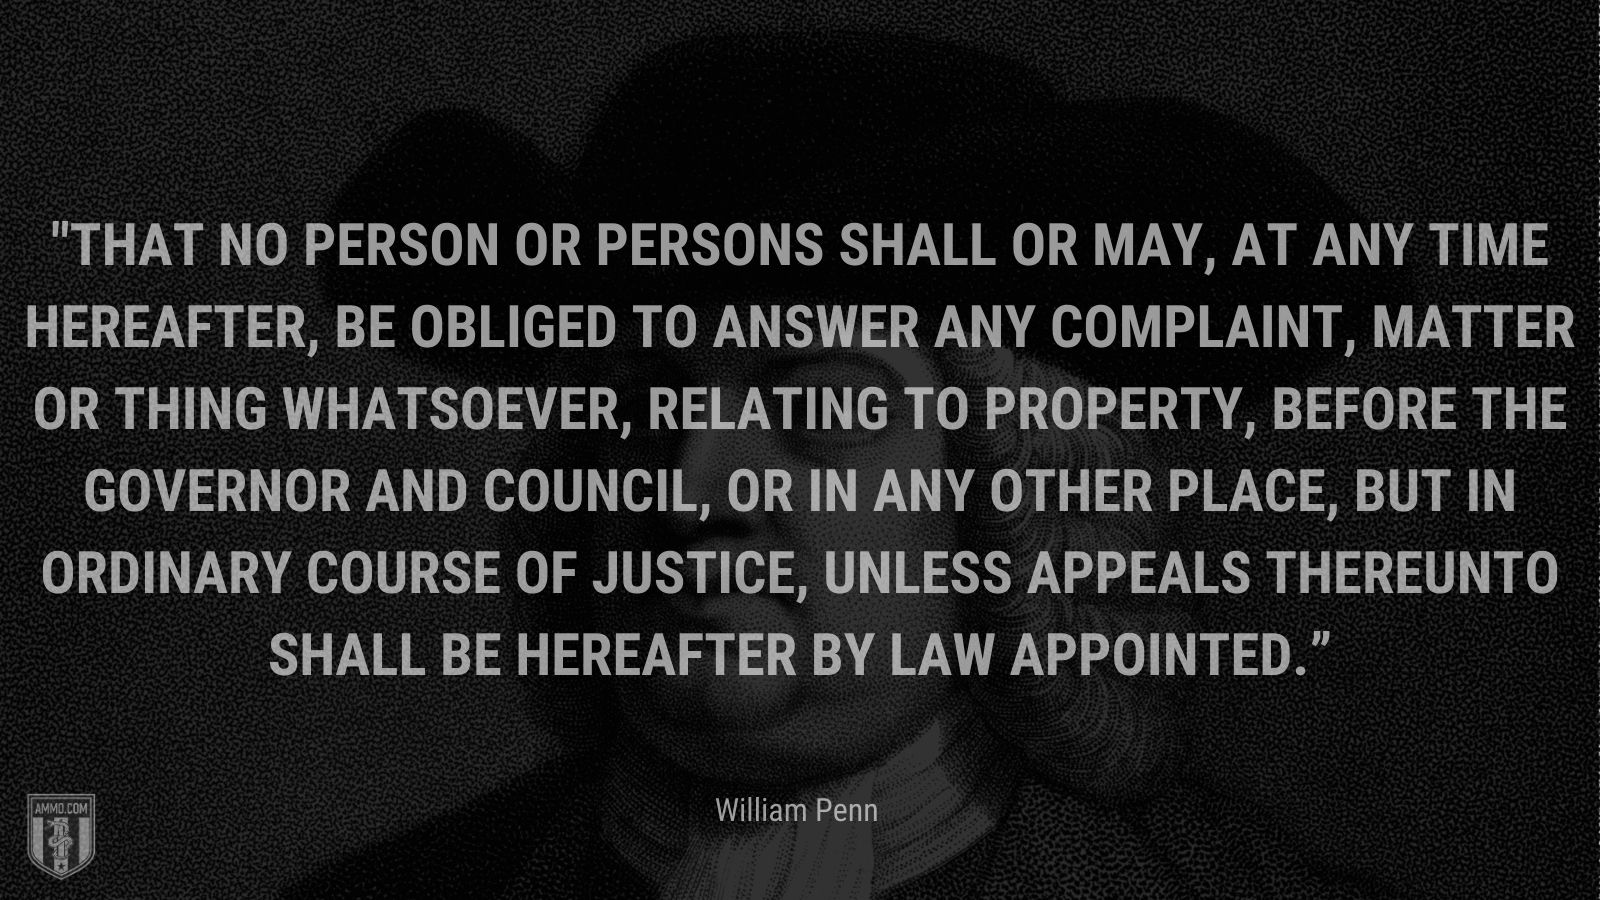 """""""That no Person or Persons shall or may, at any Time hereafter, be obliged to answer any Complaint, Matter or Thing whatsoever, relating to Property, before the Governor and Council, or in any other Place, but in ordinary Course of Justice, unless Appeals thereunto shall be hereafter by Law appointed."""" - William Penn"""